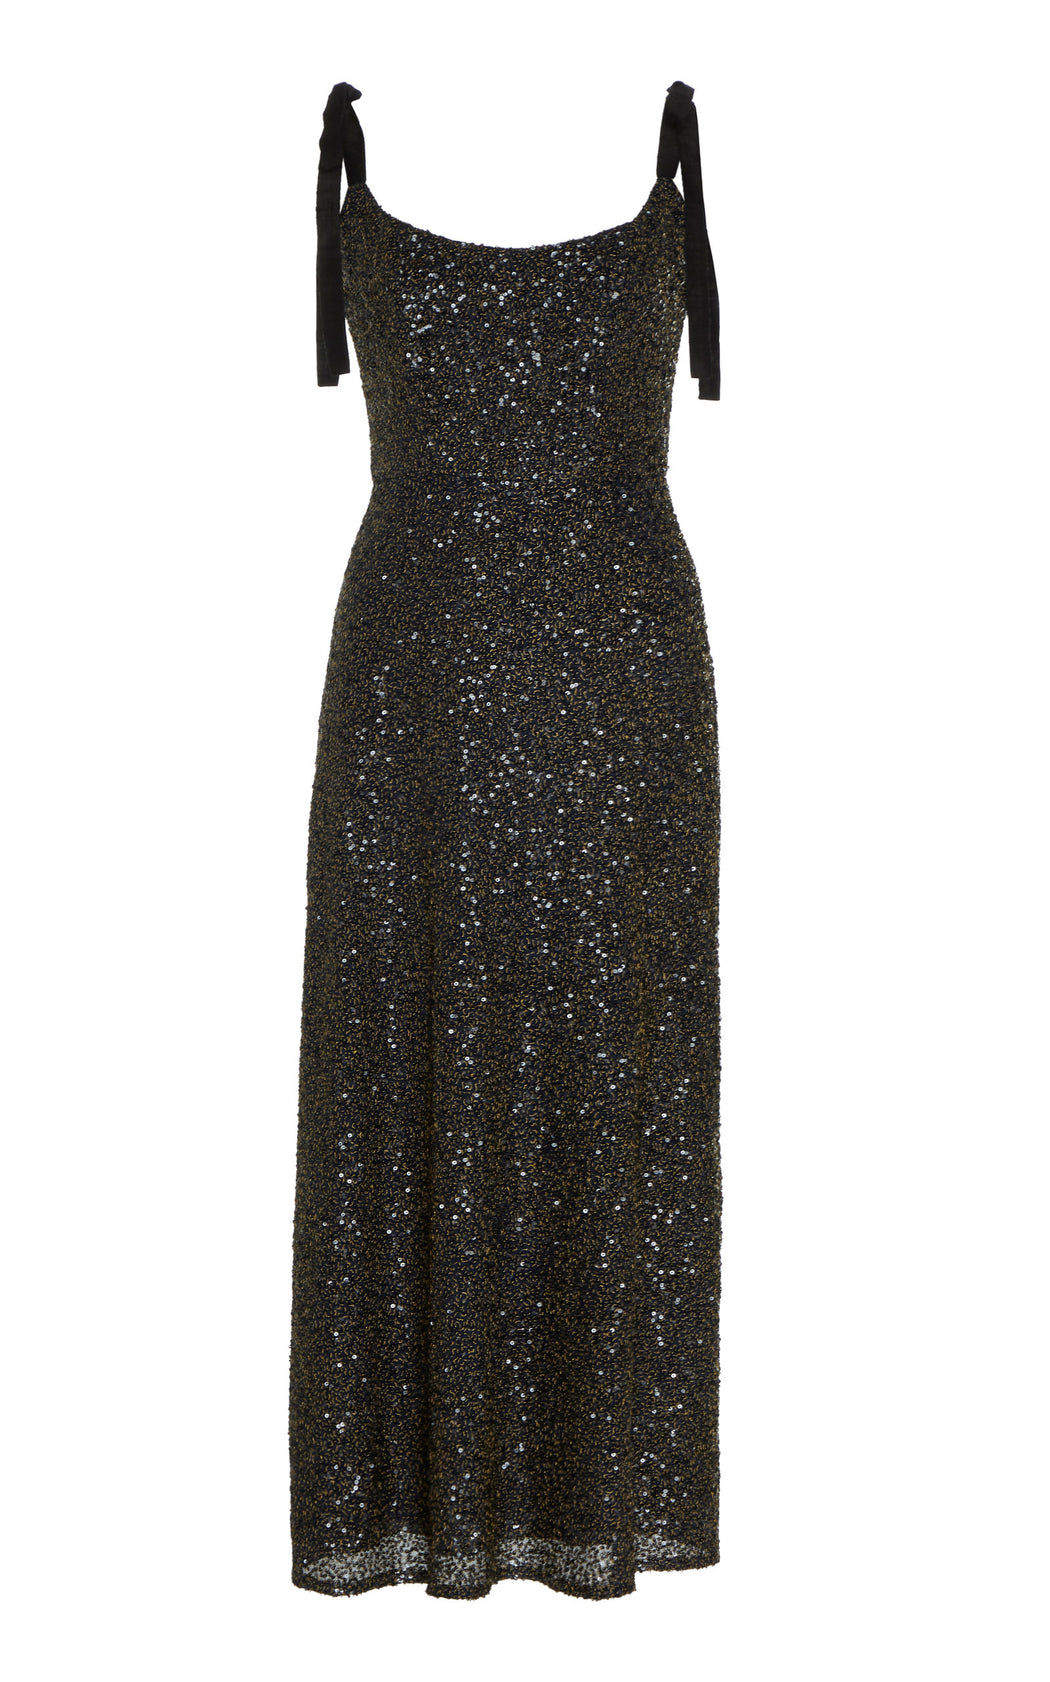 In Stock: Veronica Black Sequined Silk Chiffon Midi Dress